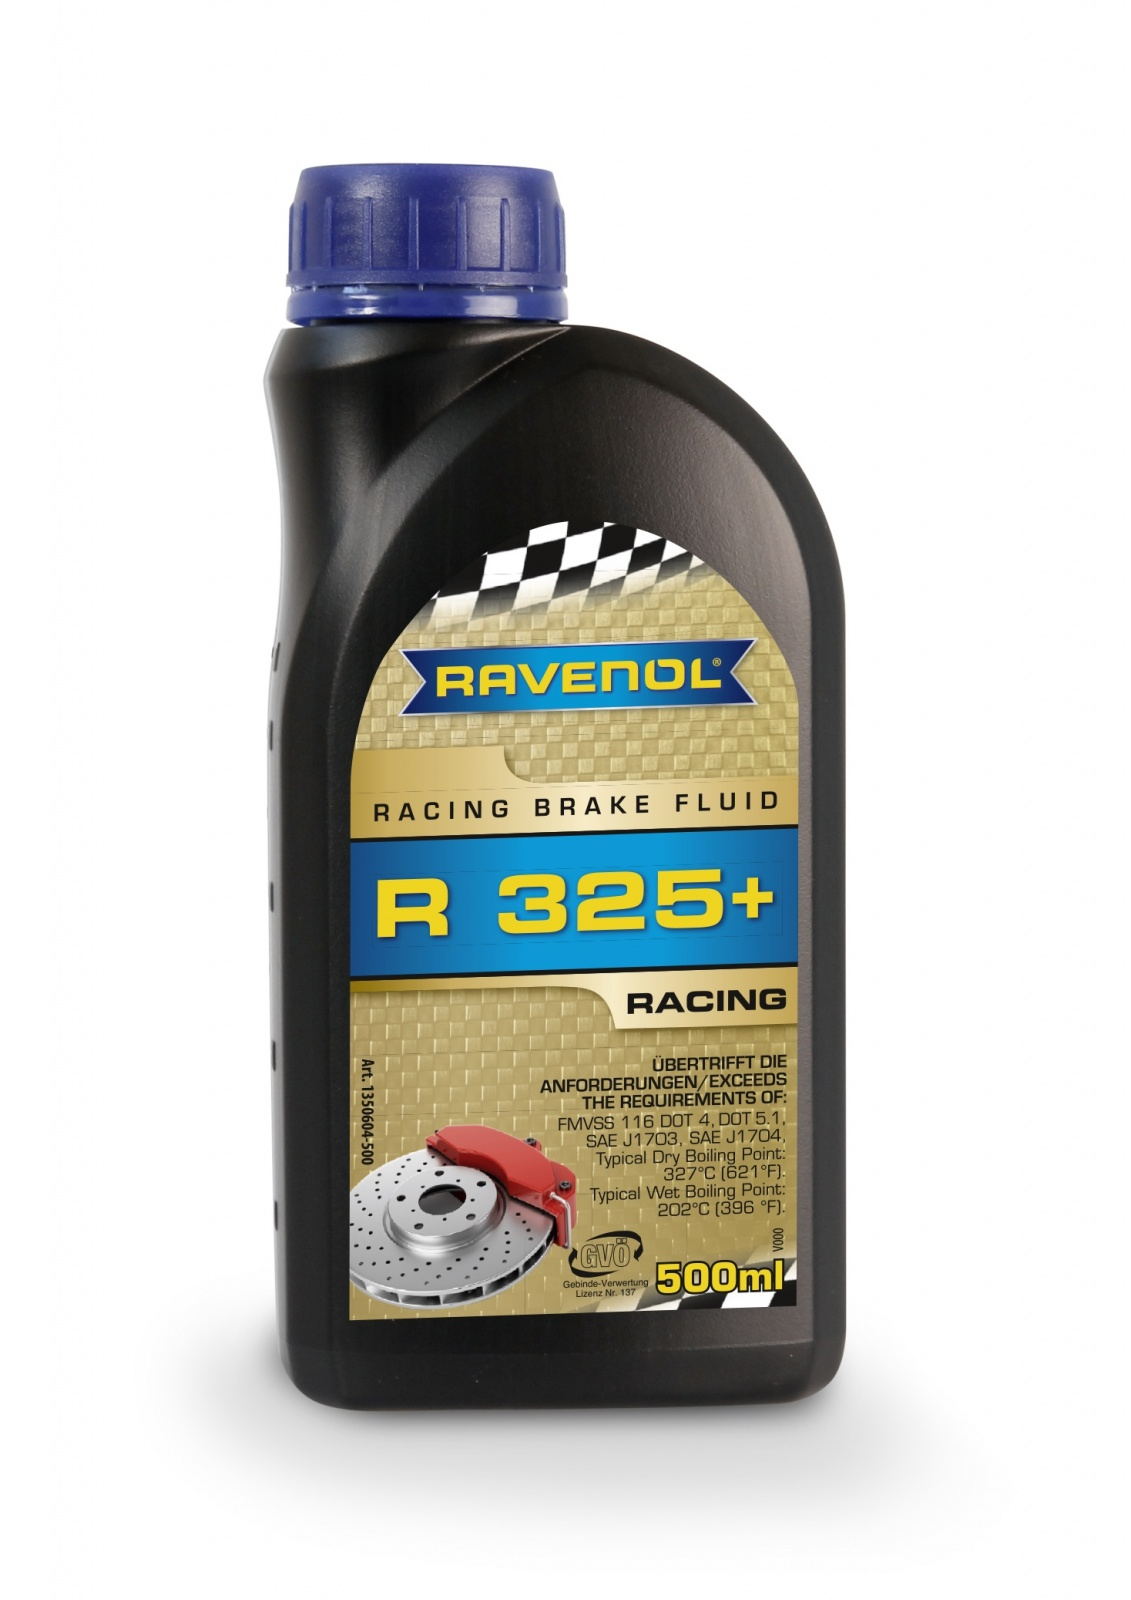 ravenol racing brake fluid R325+